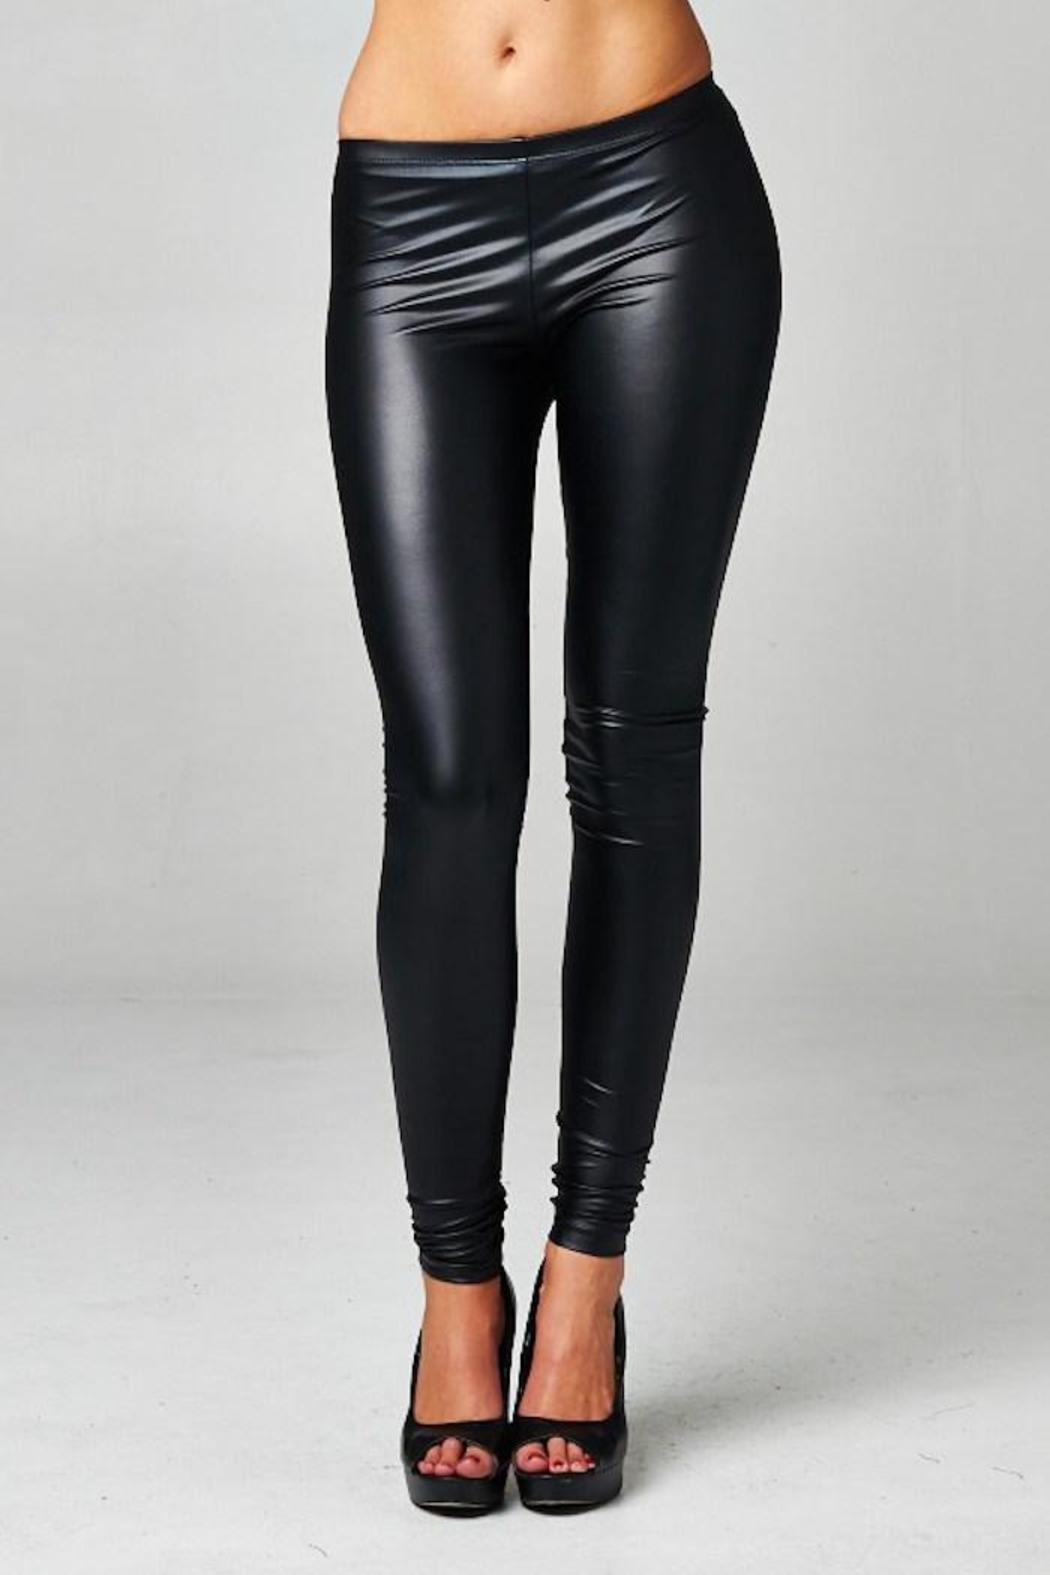 About Our Leggings. Only Leggings is the online leader when it comes to leggings and all of the different fabrics, styles, colors and tanzaniasafarisorvicos.ga are dedicated to providing the best online leggings available and because of this, we pick and choose our collection carefully.